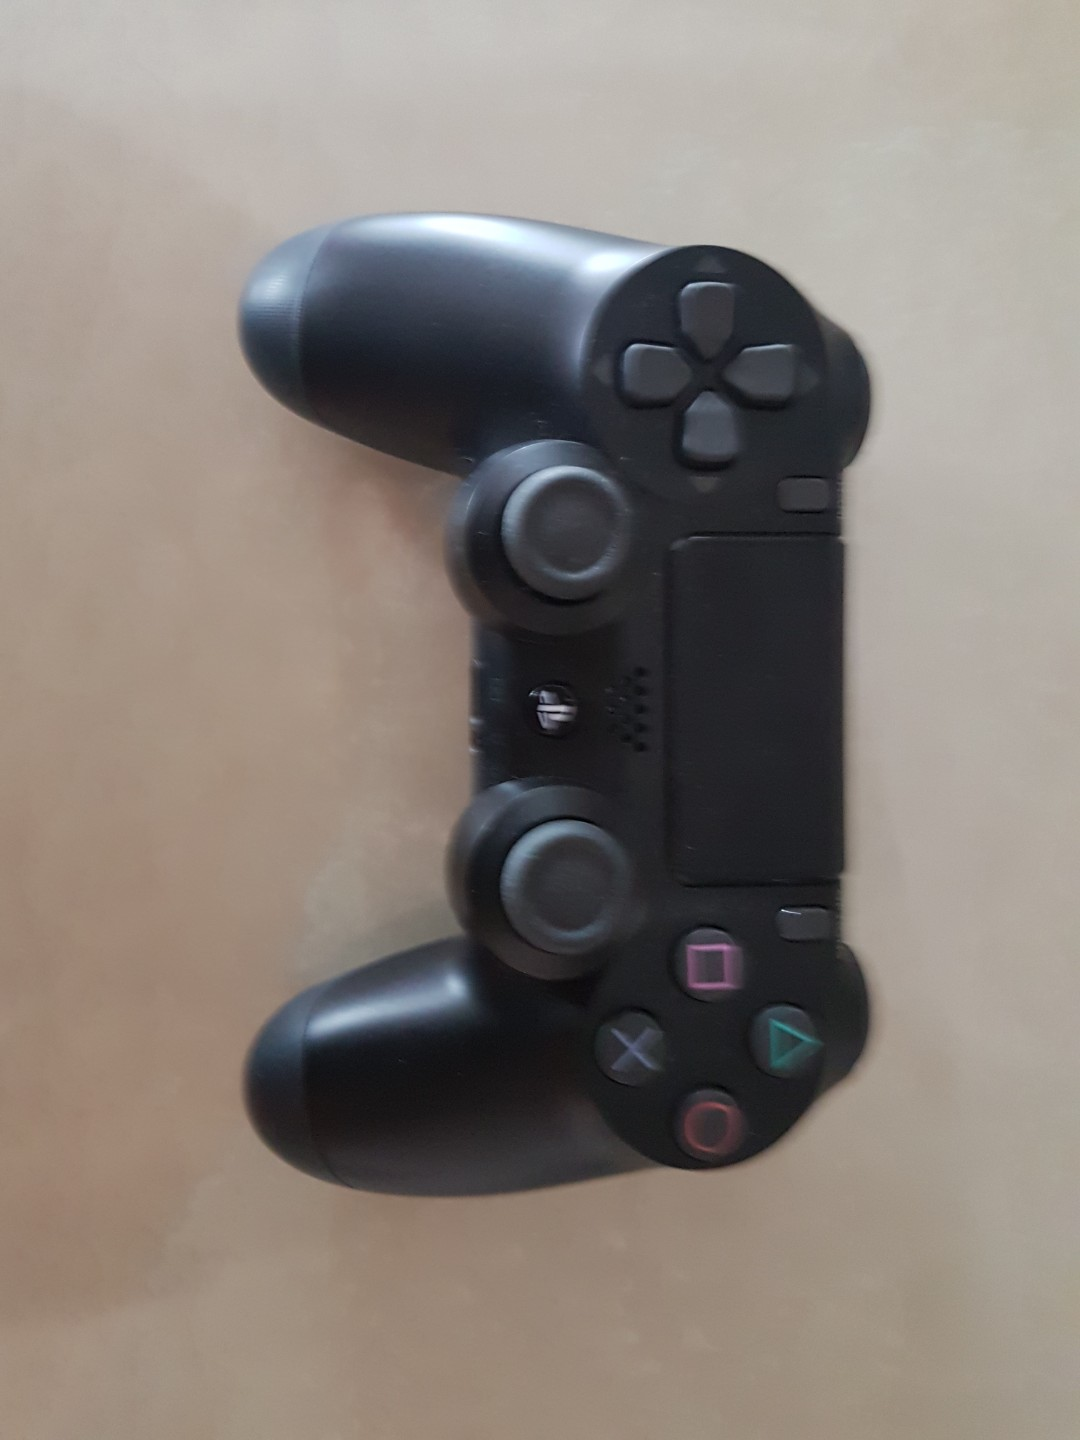 Black PS4 Pro controller